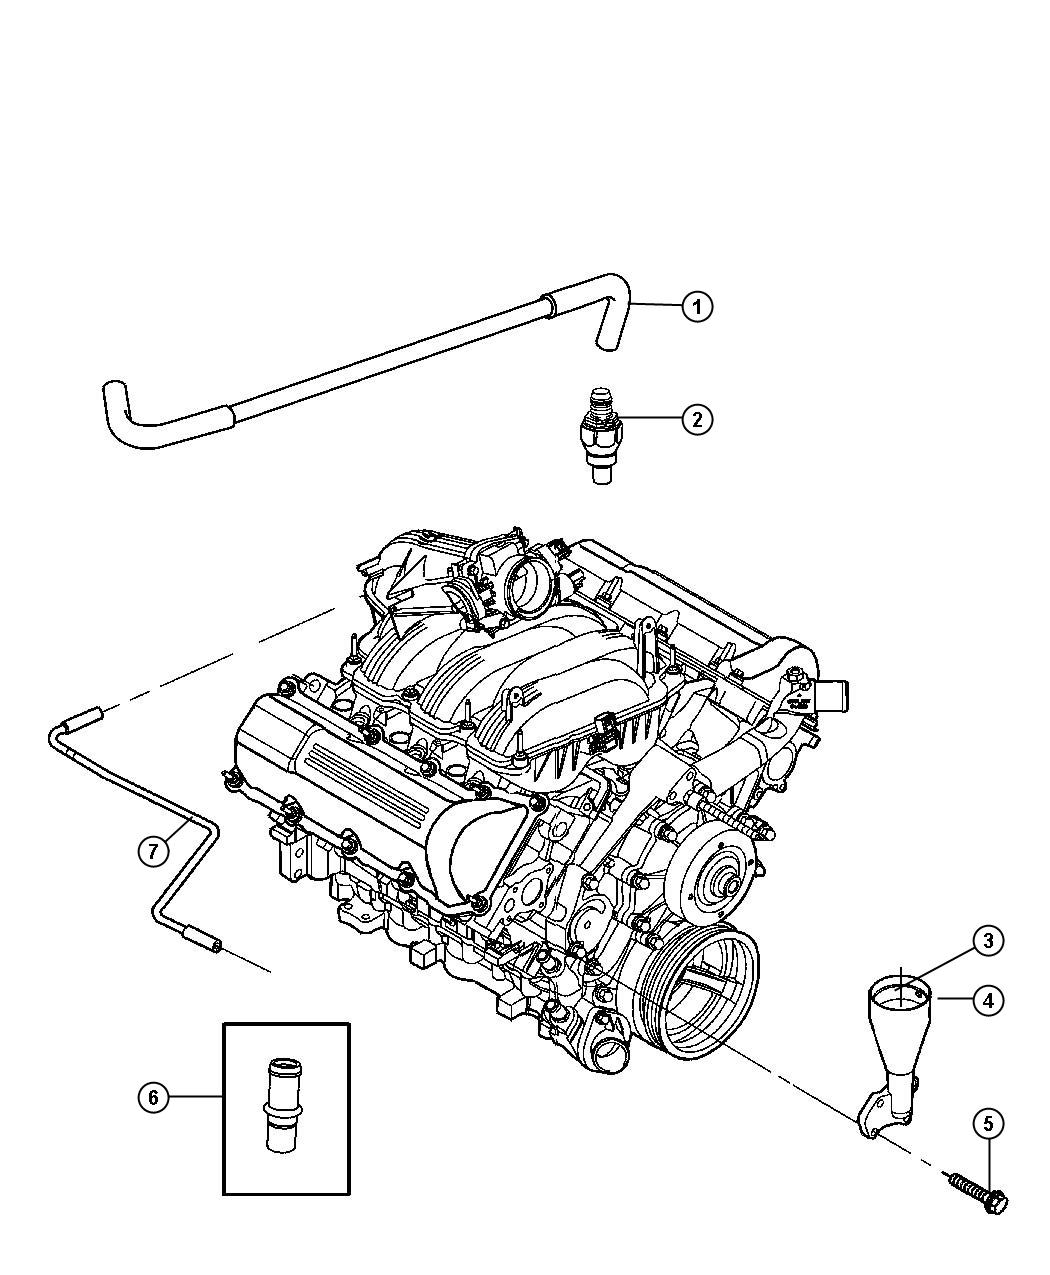 Jeep Commander Used For Pcv Valve And Housing Valve